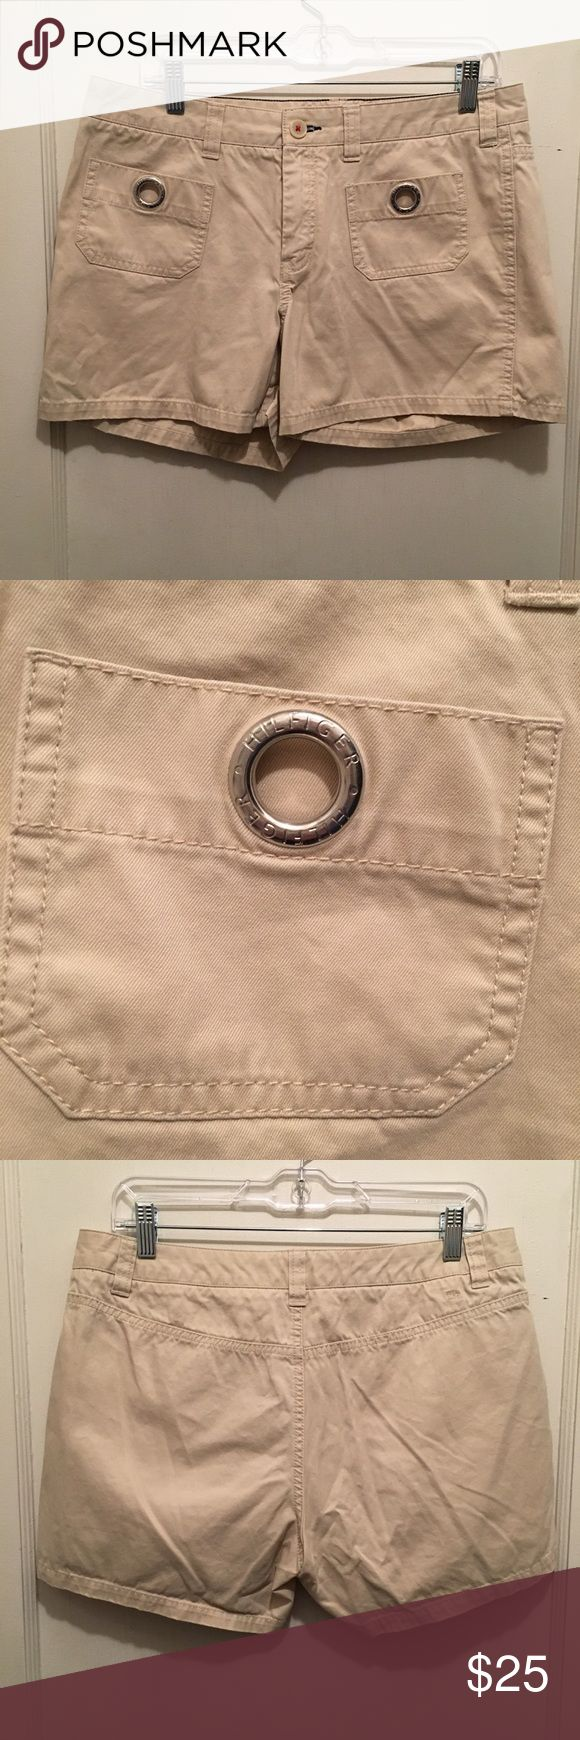 Khaki Tommy Hilfiger Women's Shorts These Tommy Hilfiger Khaki shorts are super cute! They have front pockets with silver circles that have Tommy Hilfiger stamped in the metal. These are petite. Tommy Hilfiger Shorts